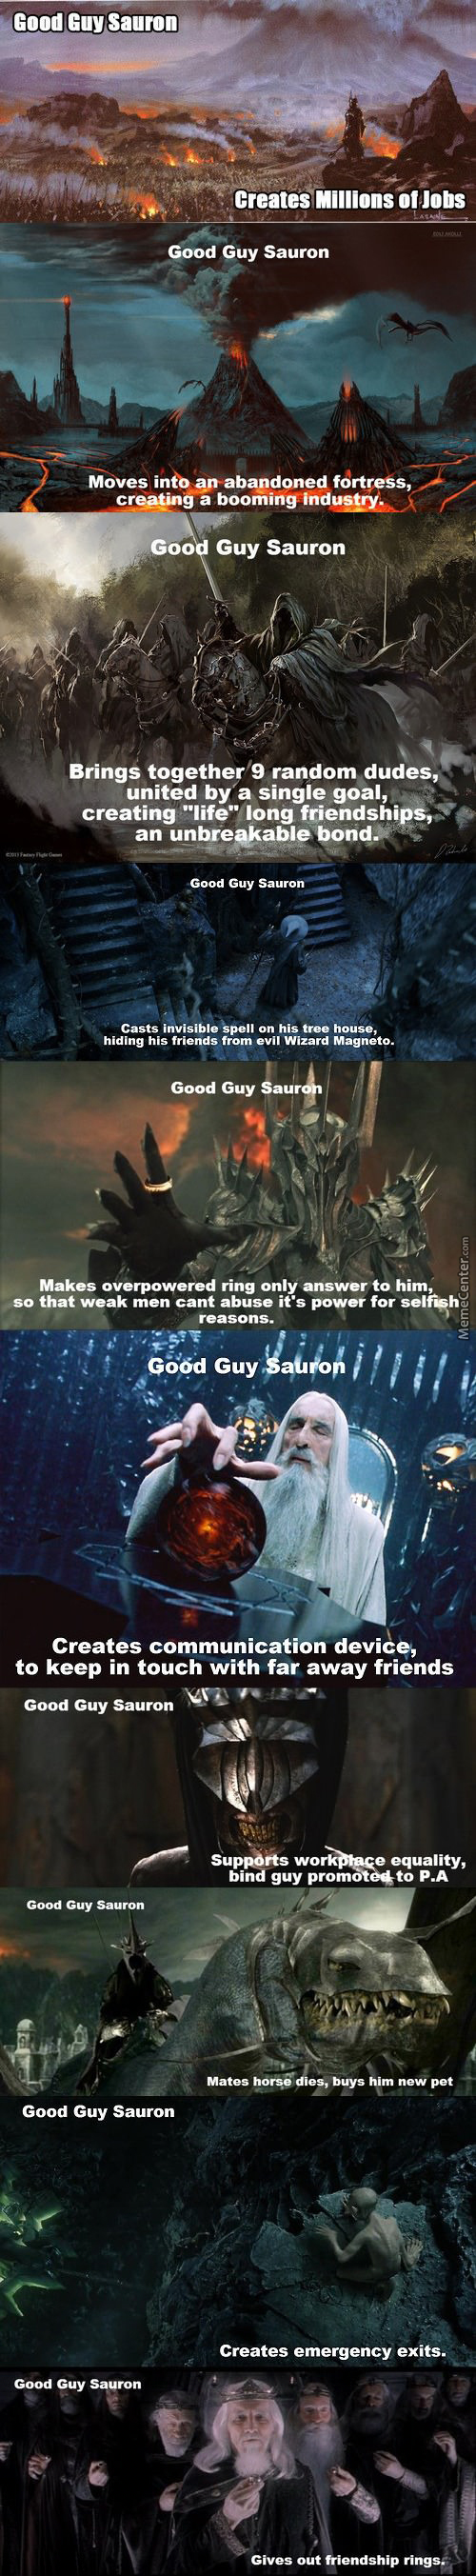 Sauron Was Just Misunderstood This Whole Time!